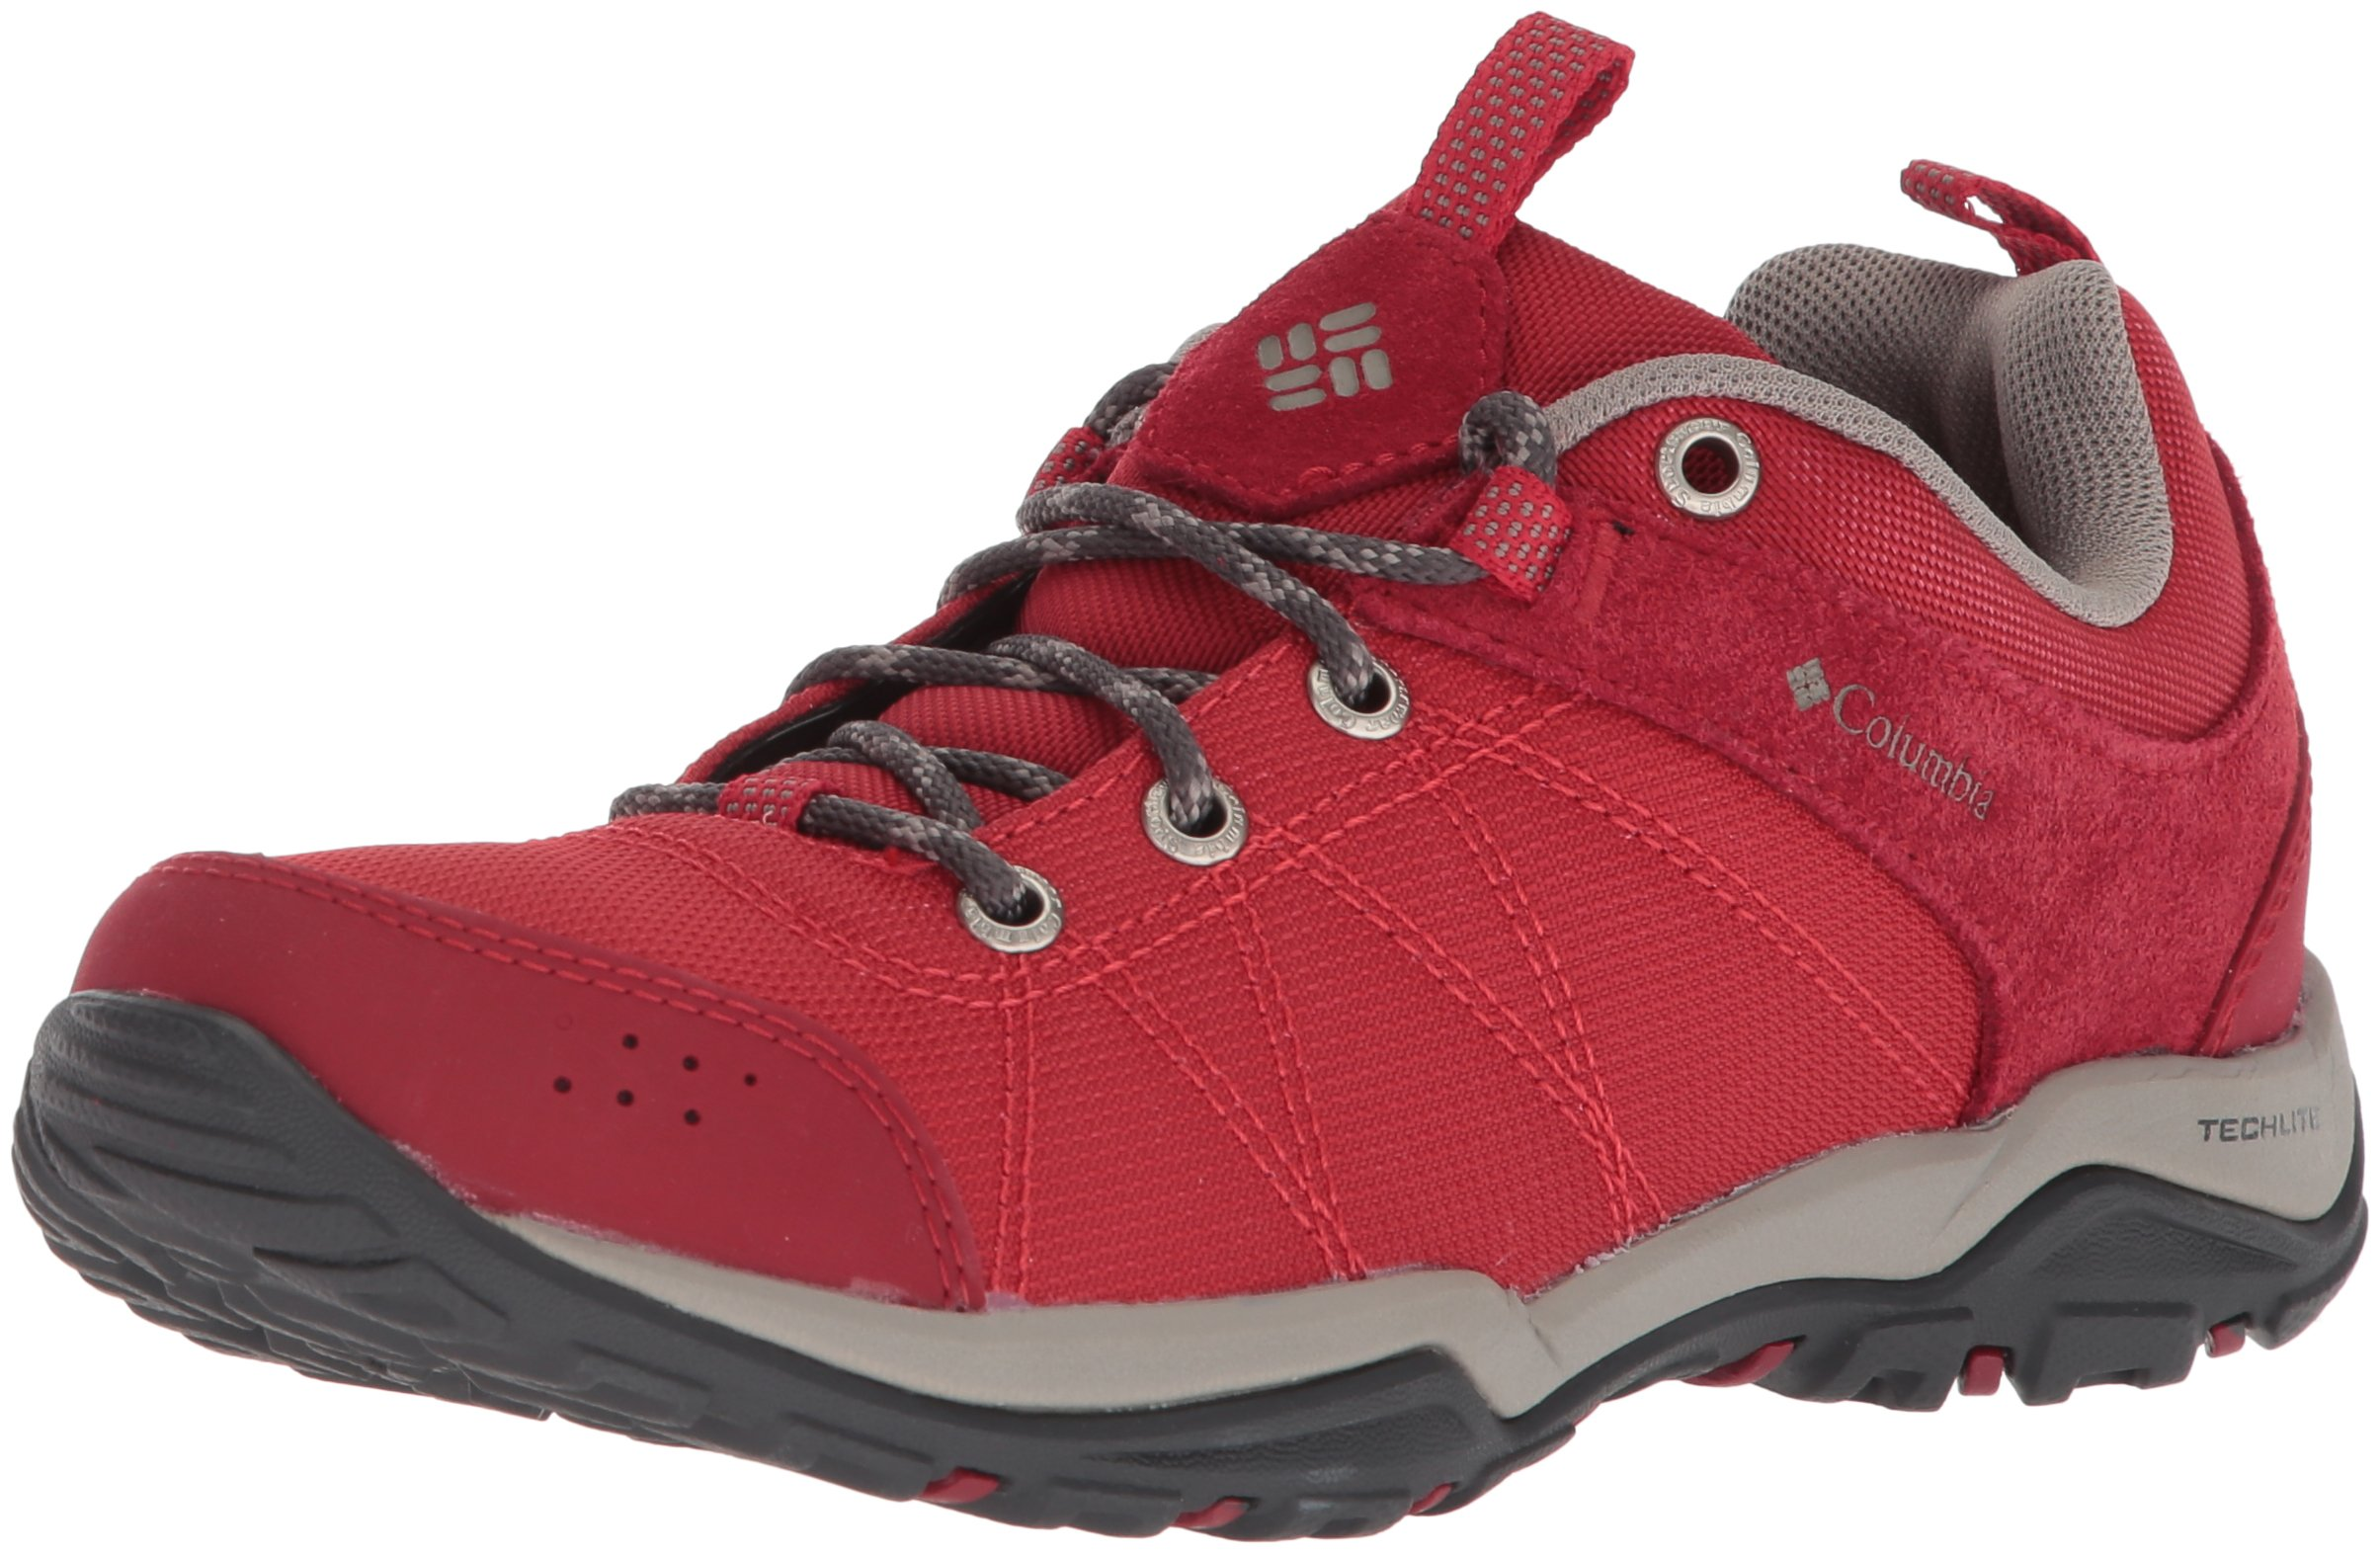 Columbia Women's Fire Venture Textile Hiking Boot, Mountain Red, Kettle, 9.5 Regular US